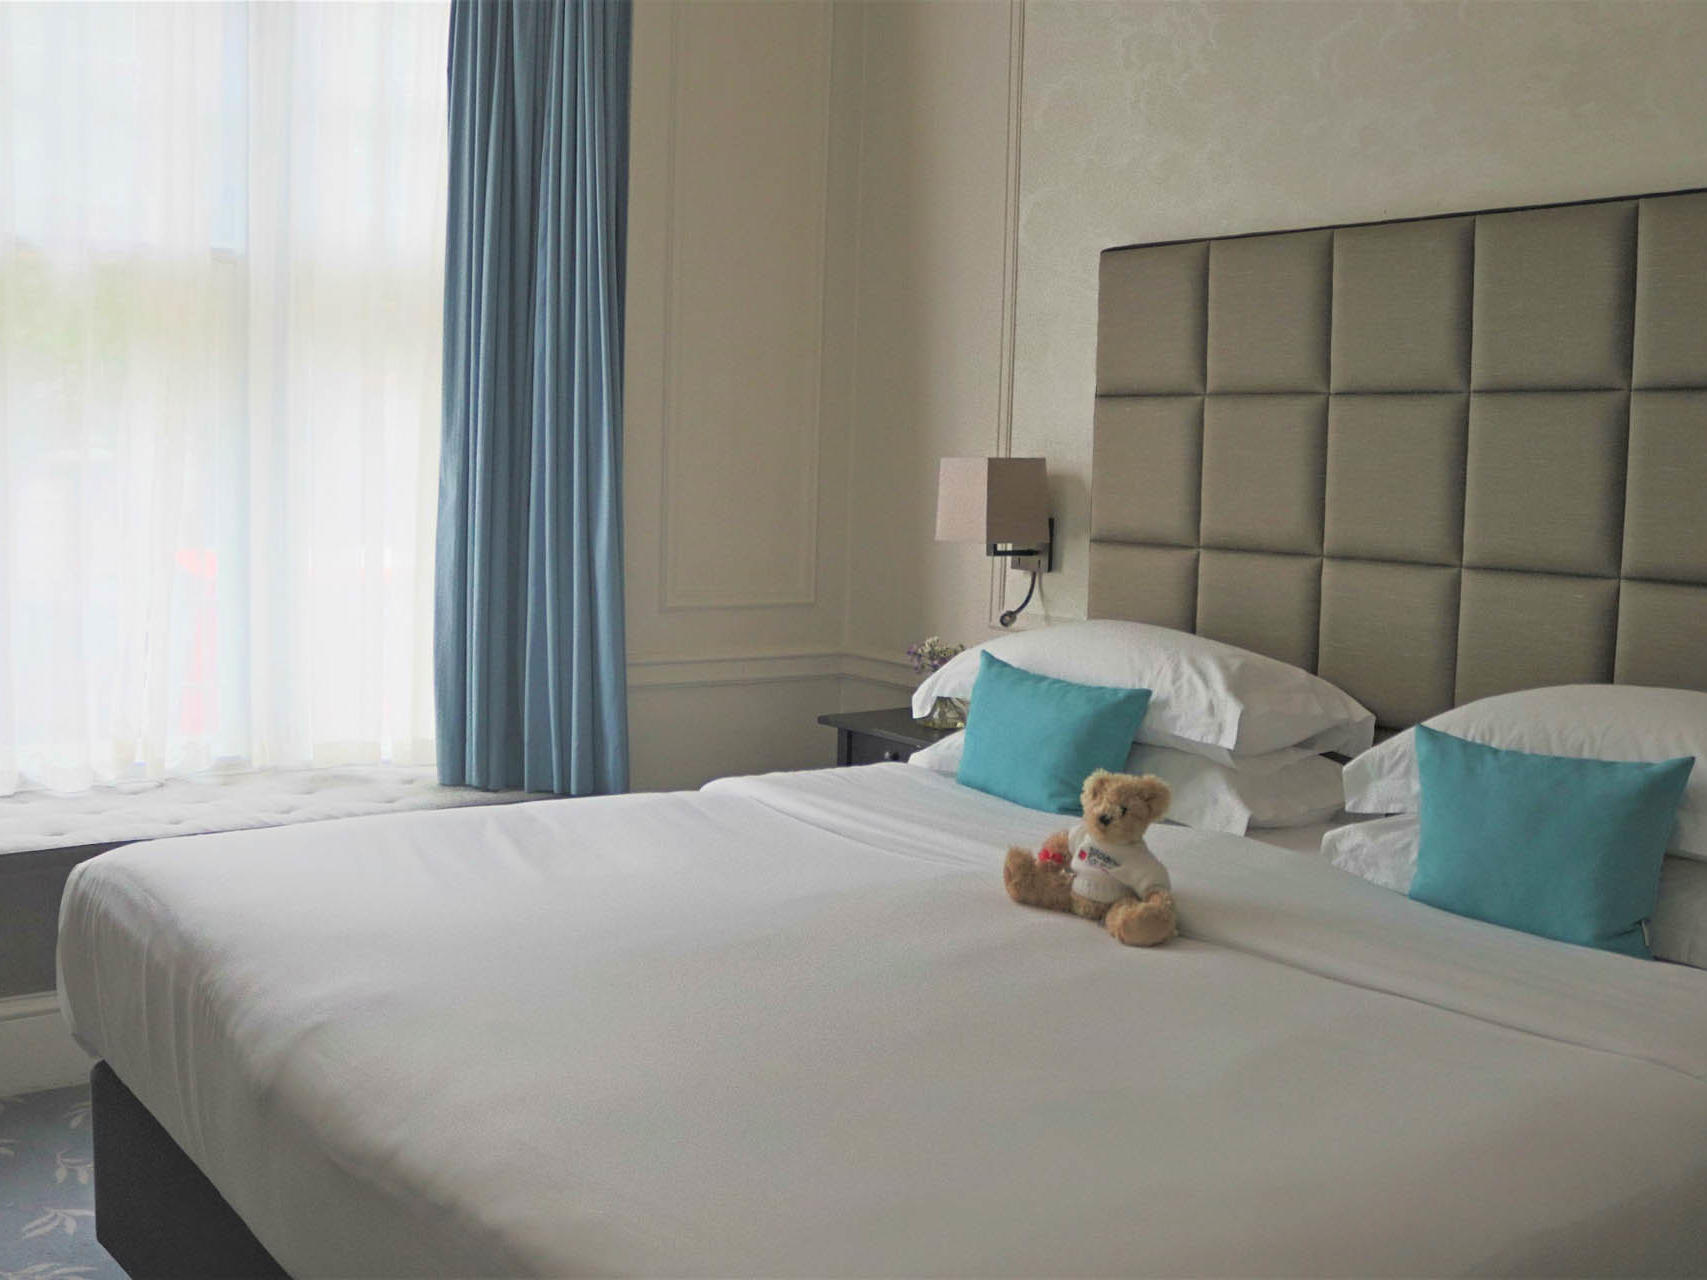 Superior double bed room with double bed at Sloane Square Hotel